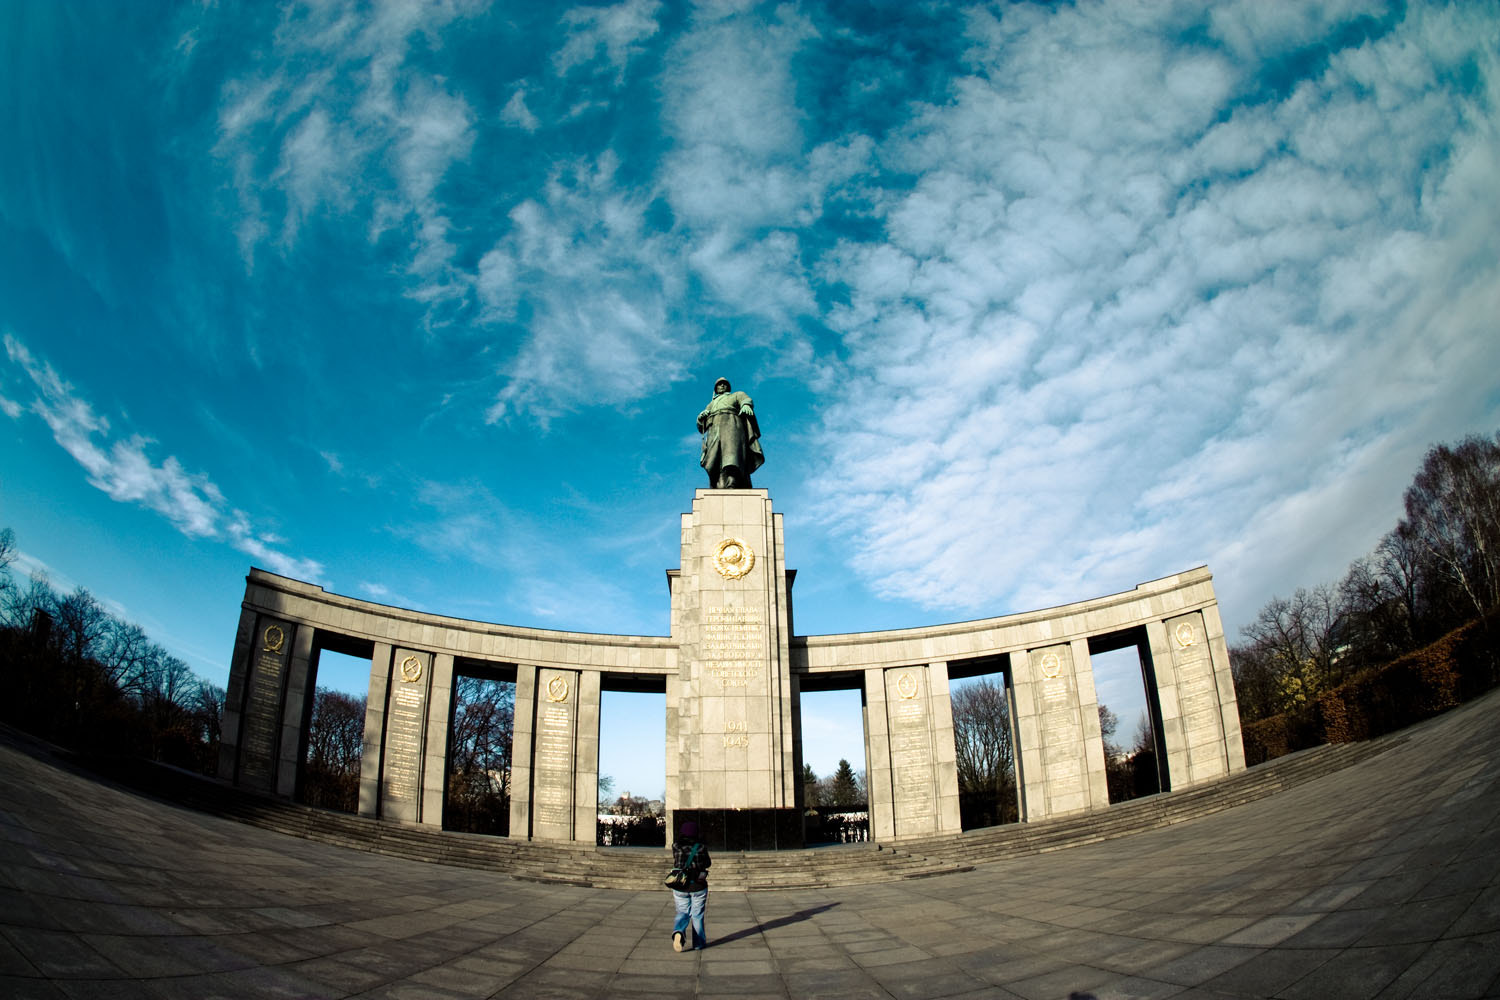 Photograph Soviet Memorial at Tiergarten by Antonio Rull on 500px